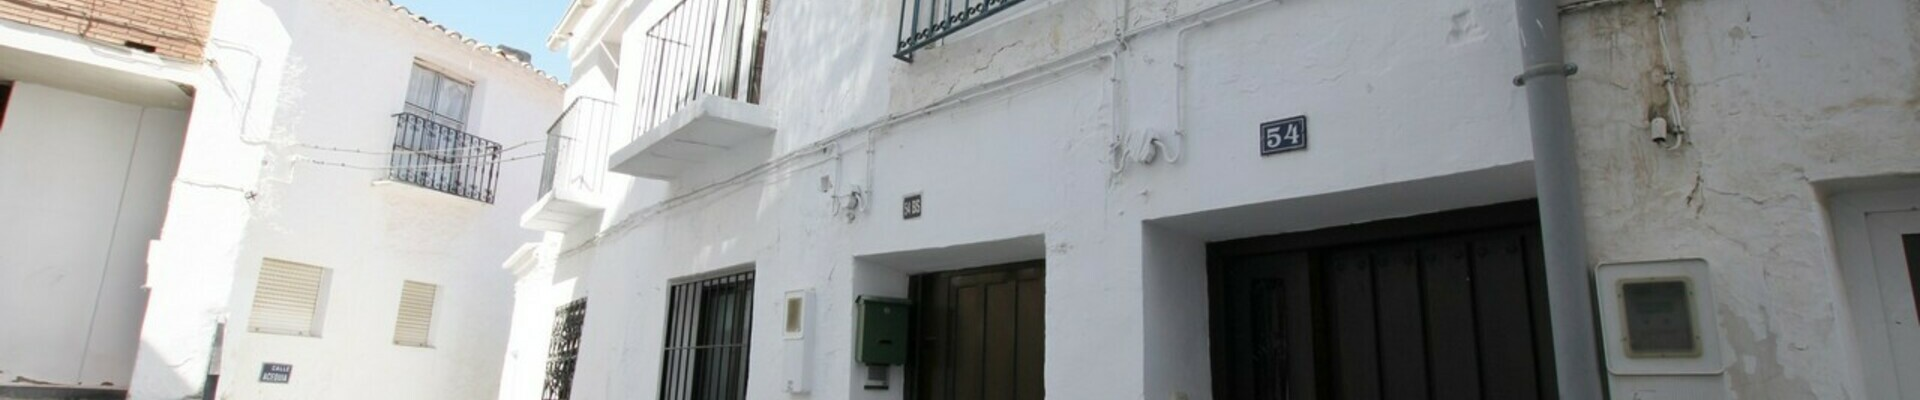 AF496: 2 Bedroom Townhouse for Sale